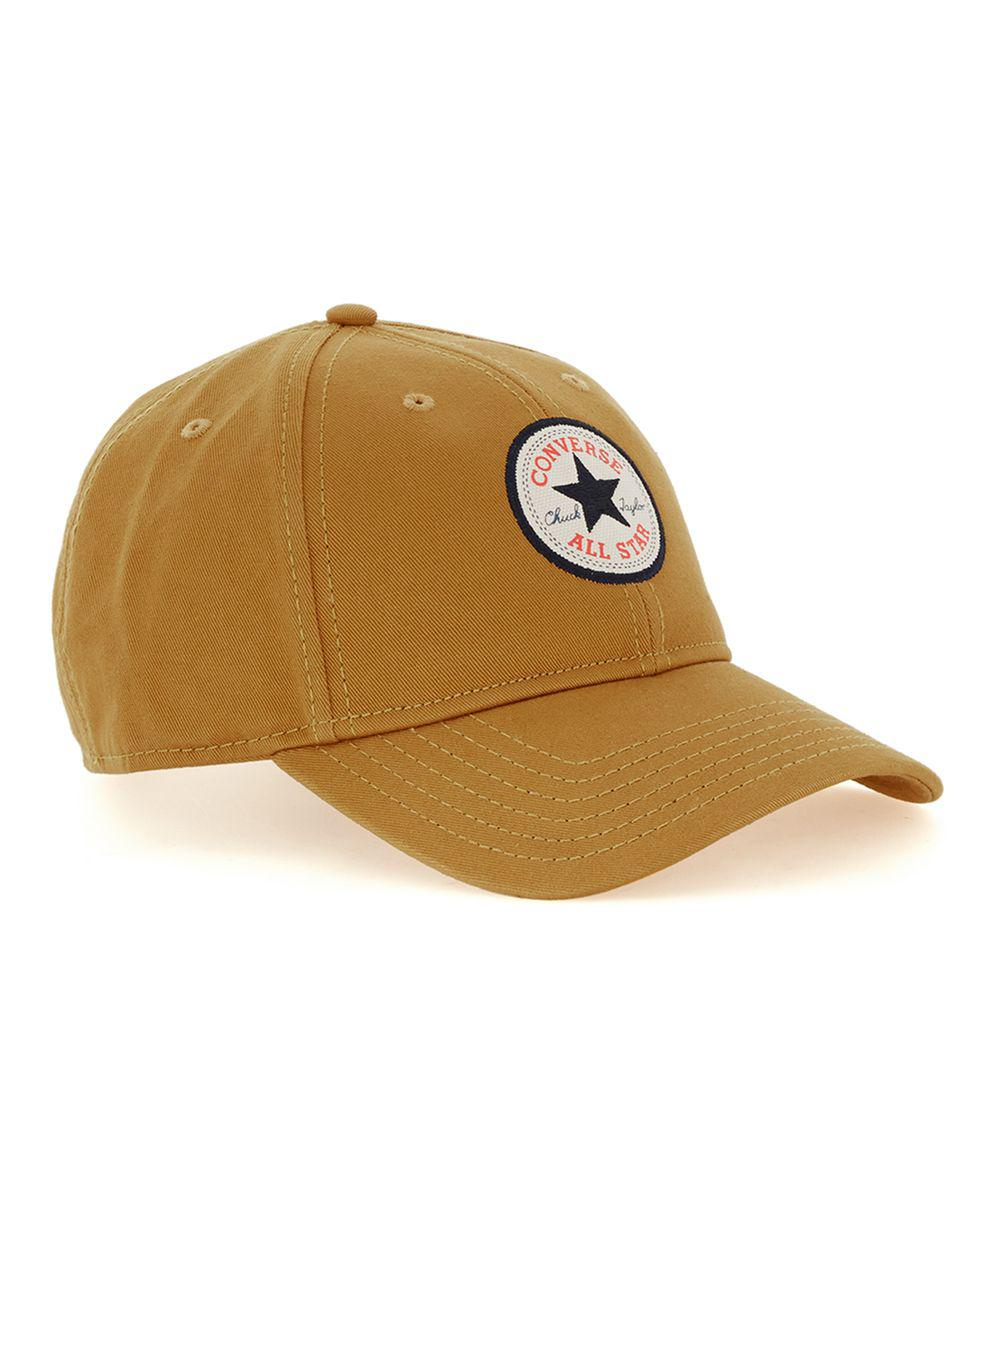 750decded0d Converse Converse Mustard Curved Peak Cap in Yellow for Men - Lyst